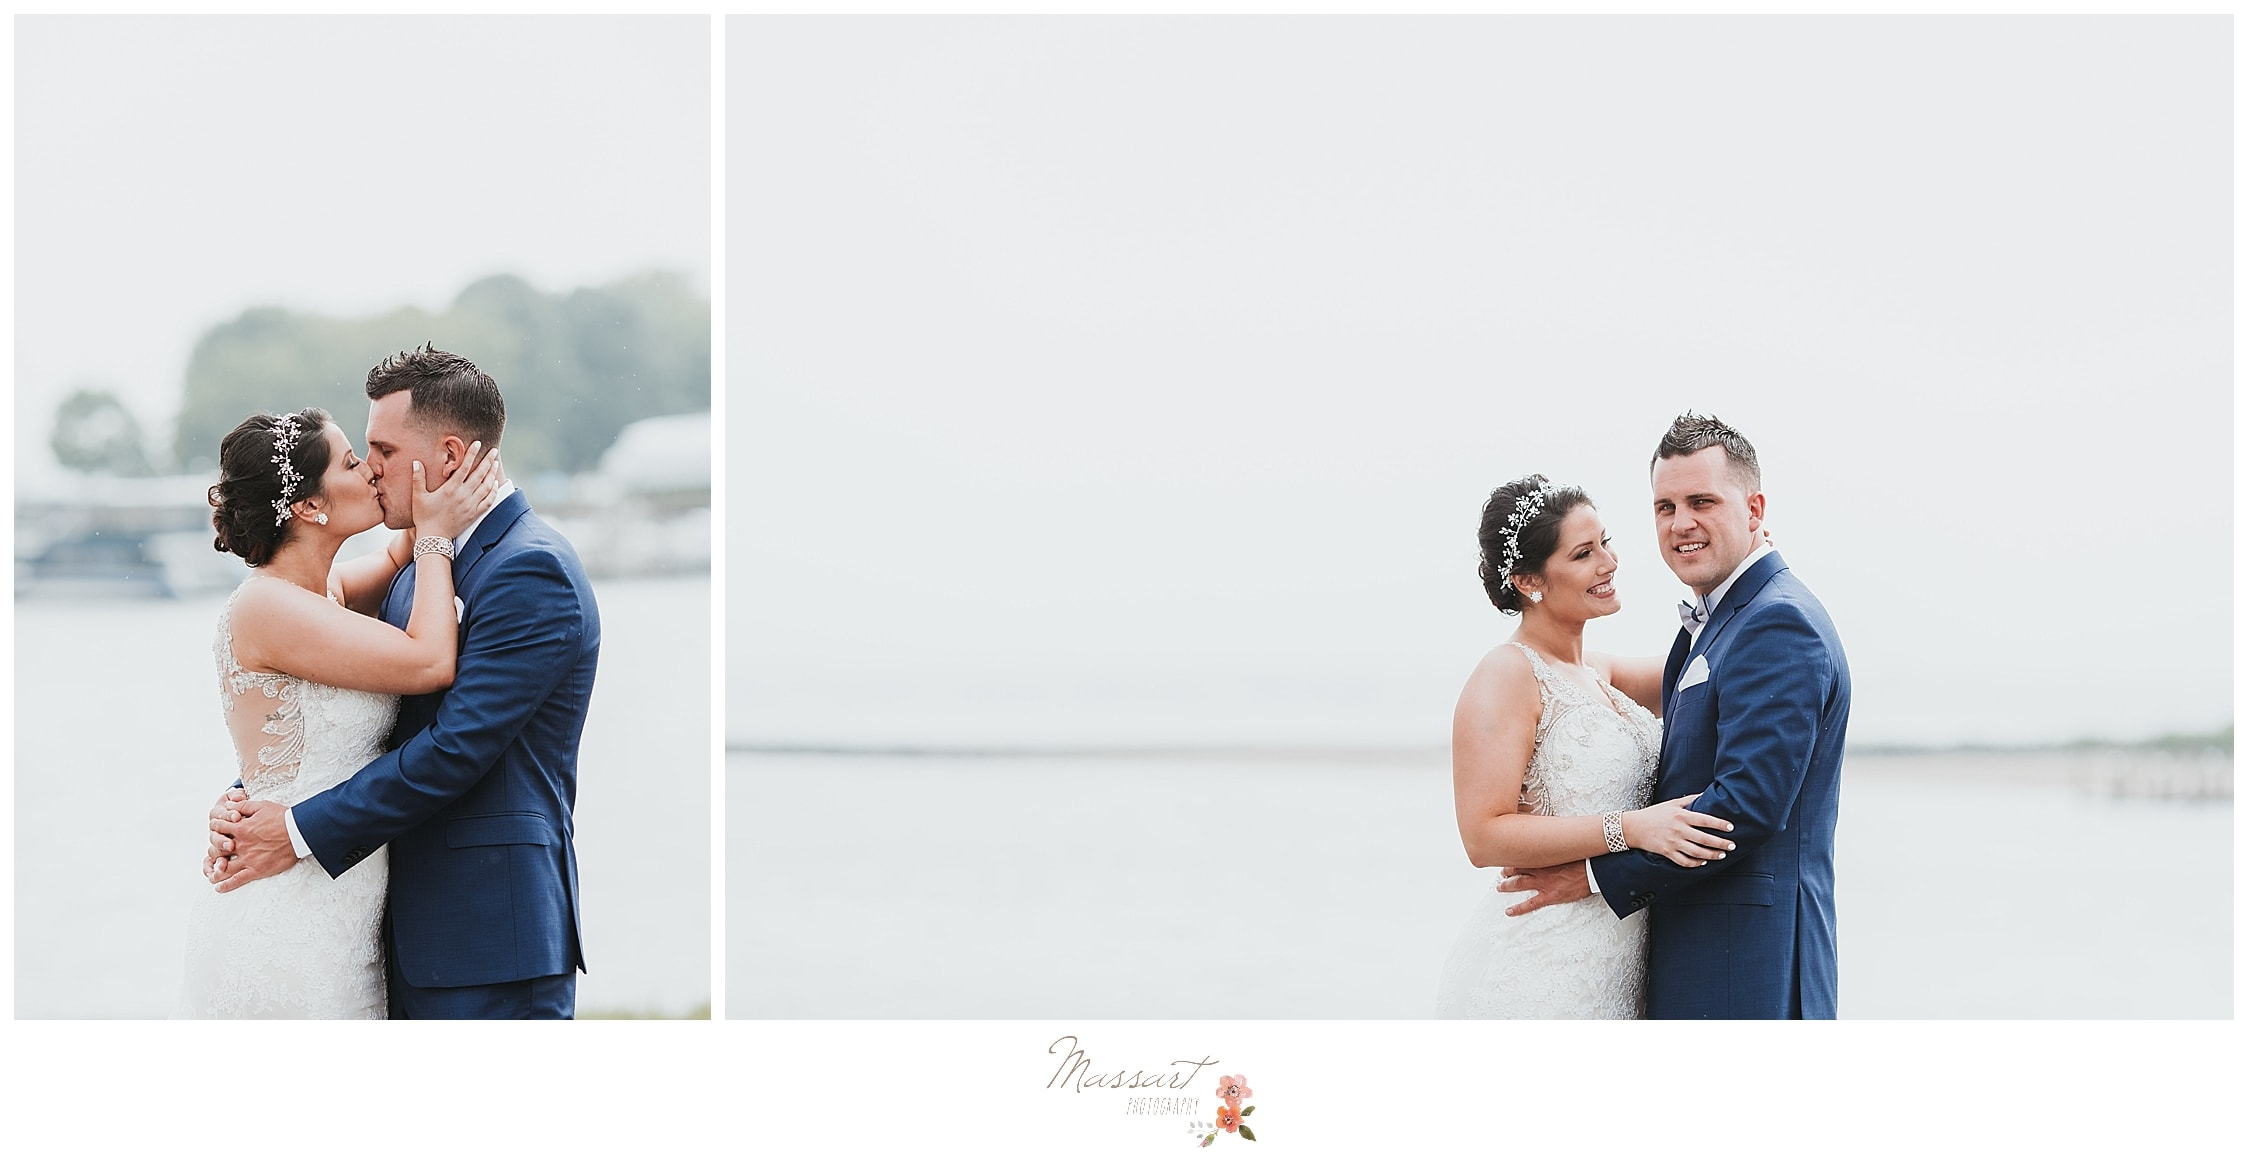 Waterfront wedding portraits at Harbor Lights in RI photographed by Massart Photography, CT wedding photographers.